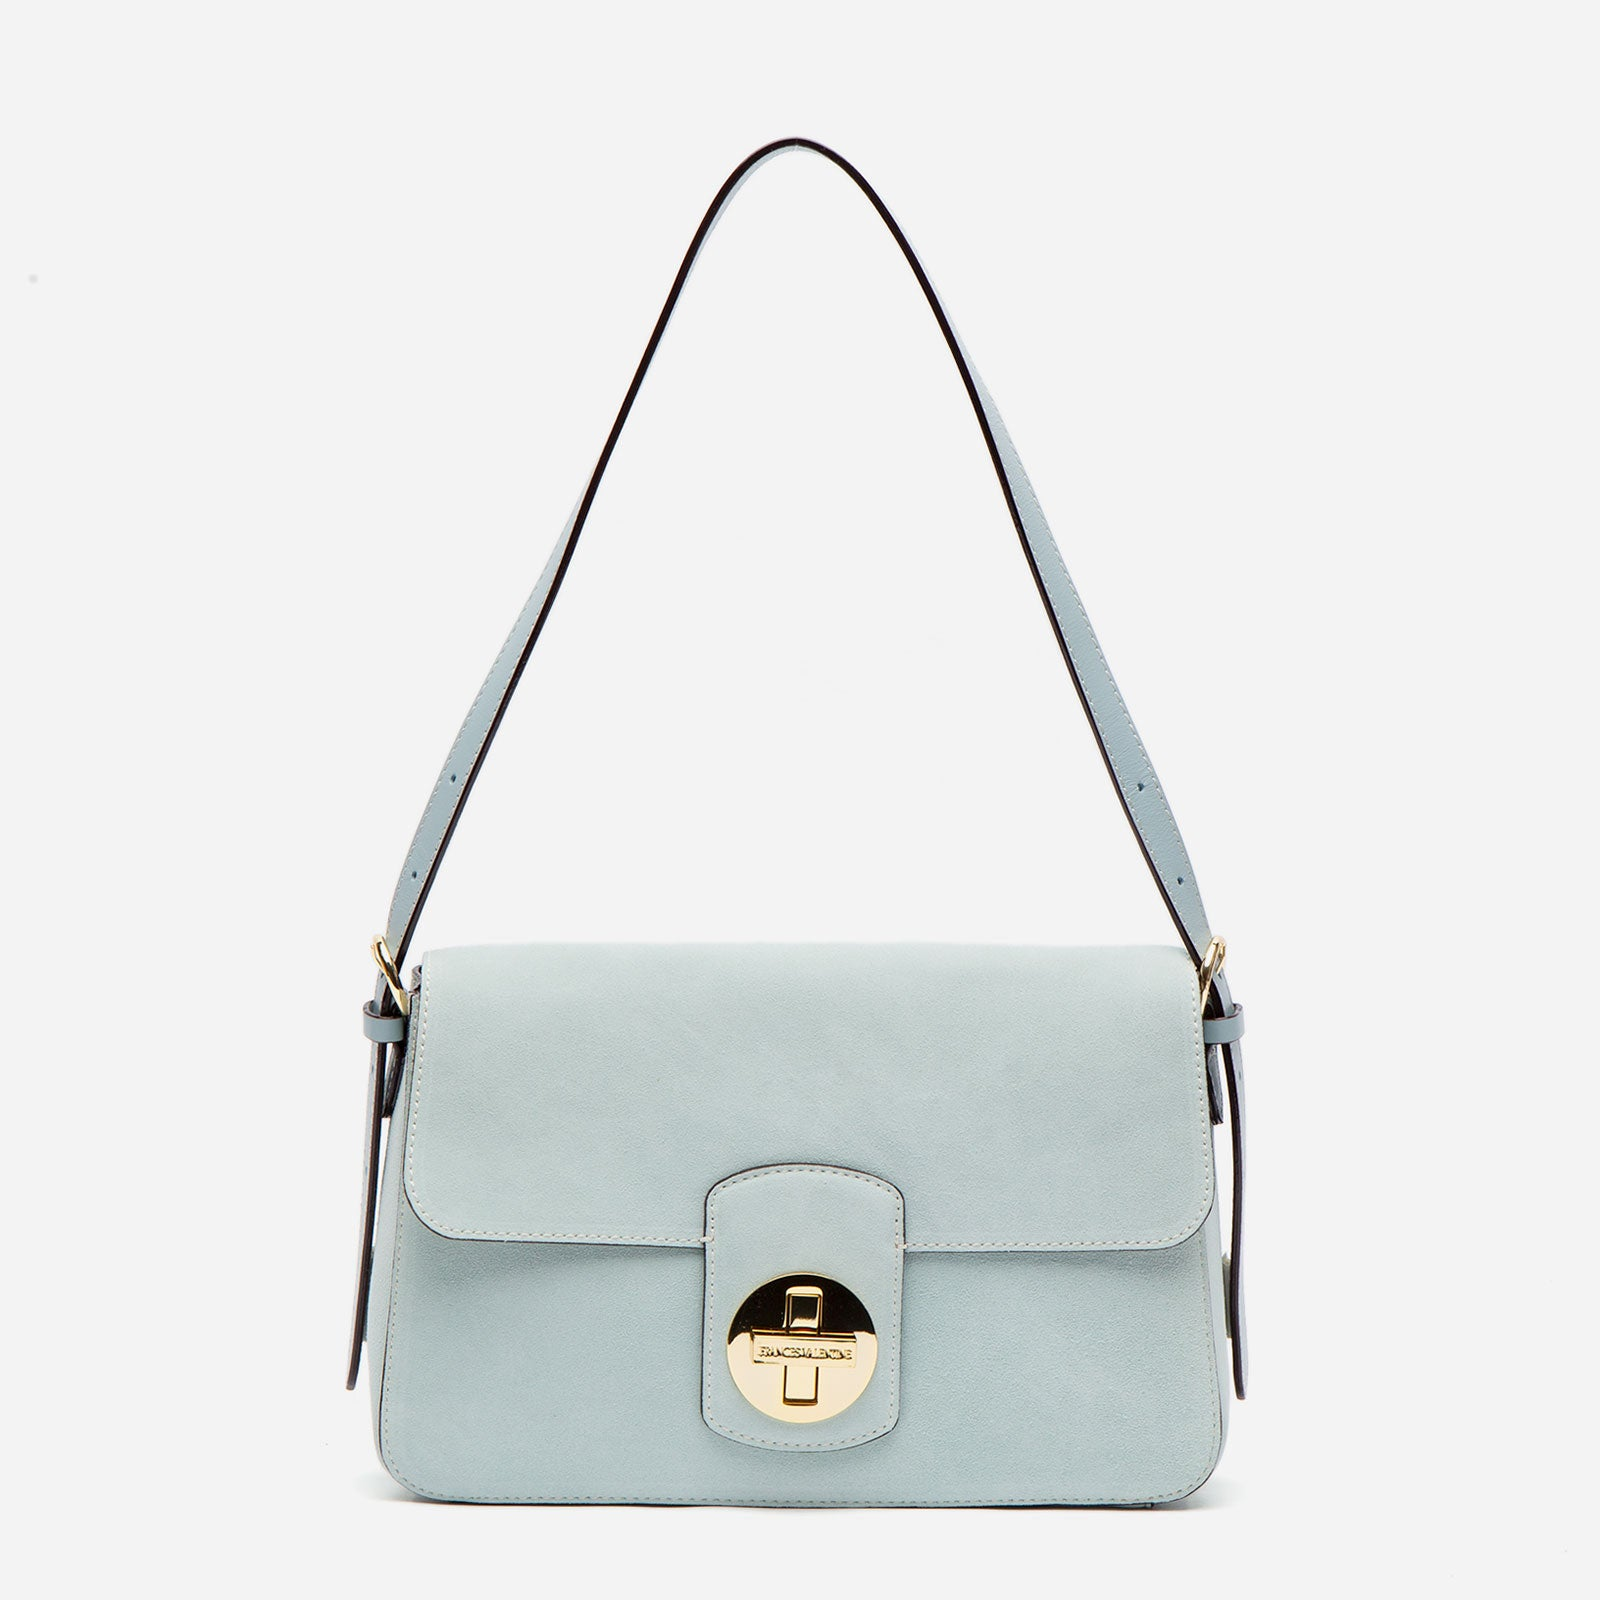 Ruby Shoulder Bag Suede Sky Blue - Frances Valentine